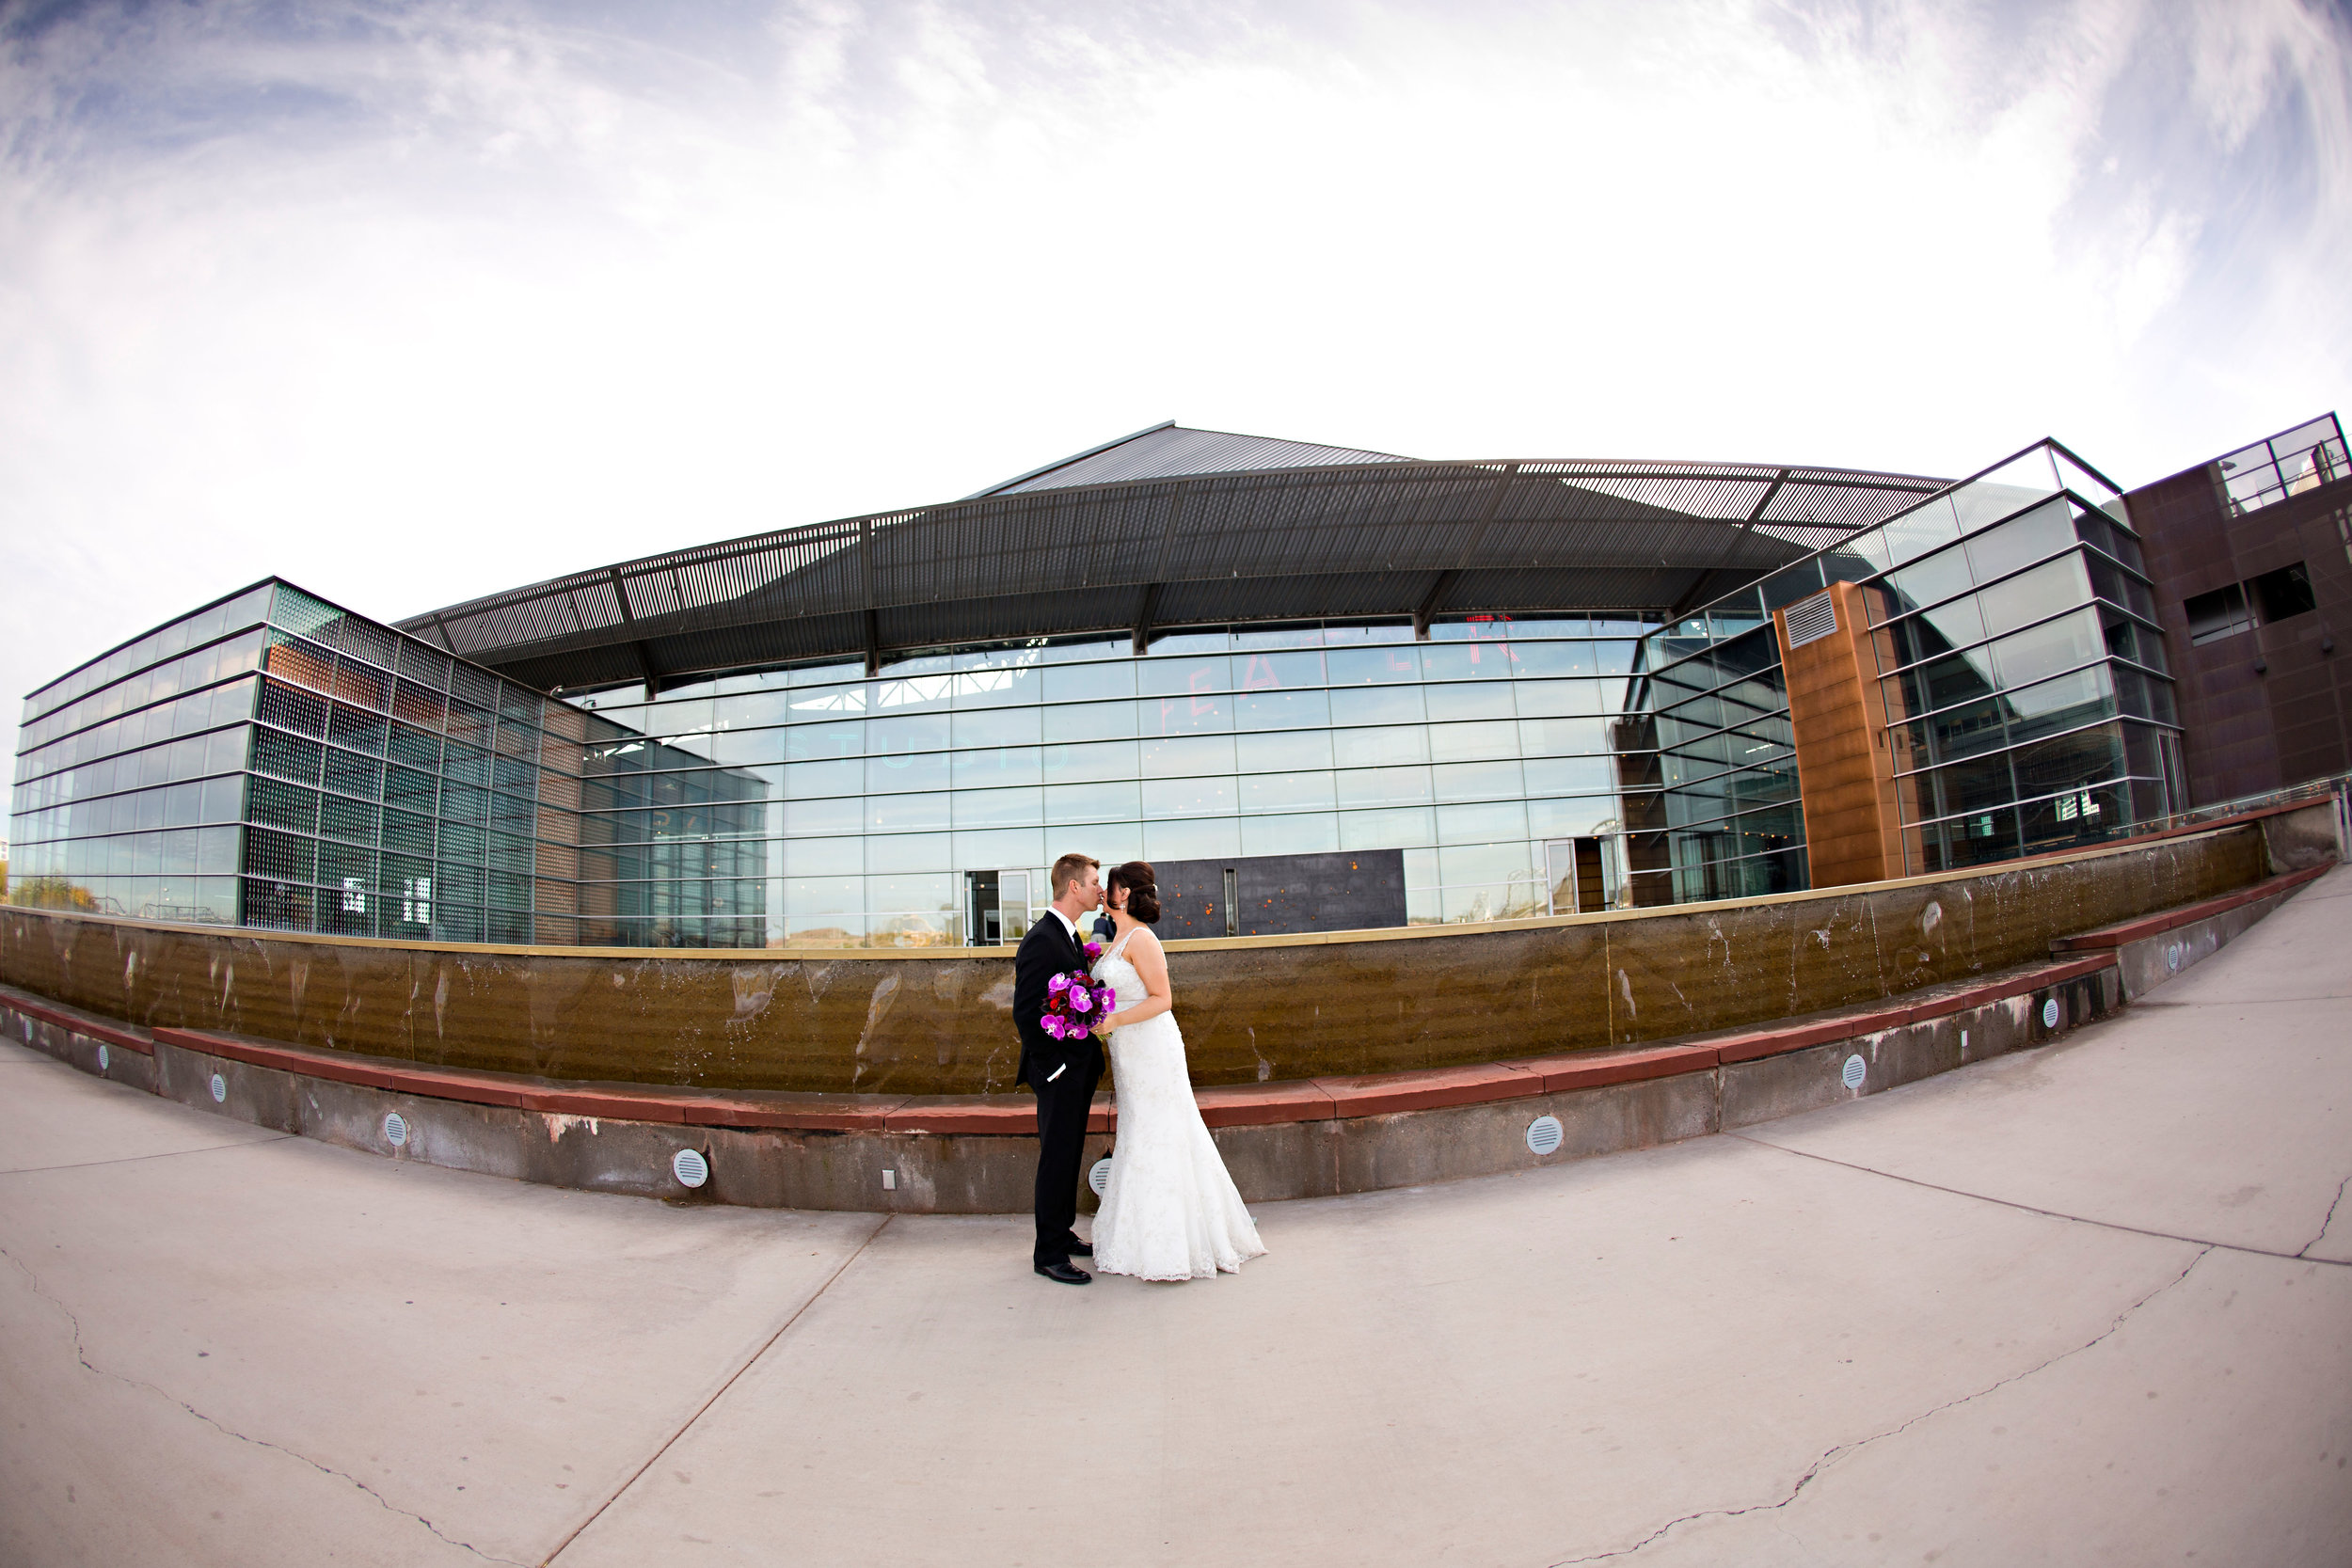 9 first look bride and groom first look bride and groom wedding poses O Grace Photography Life Design Events.jpg